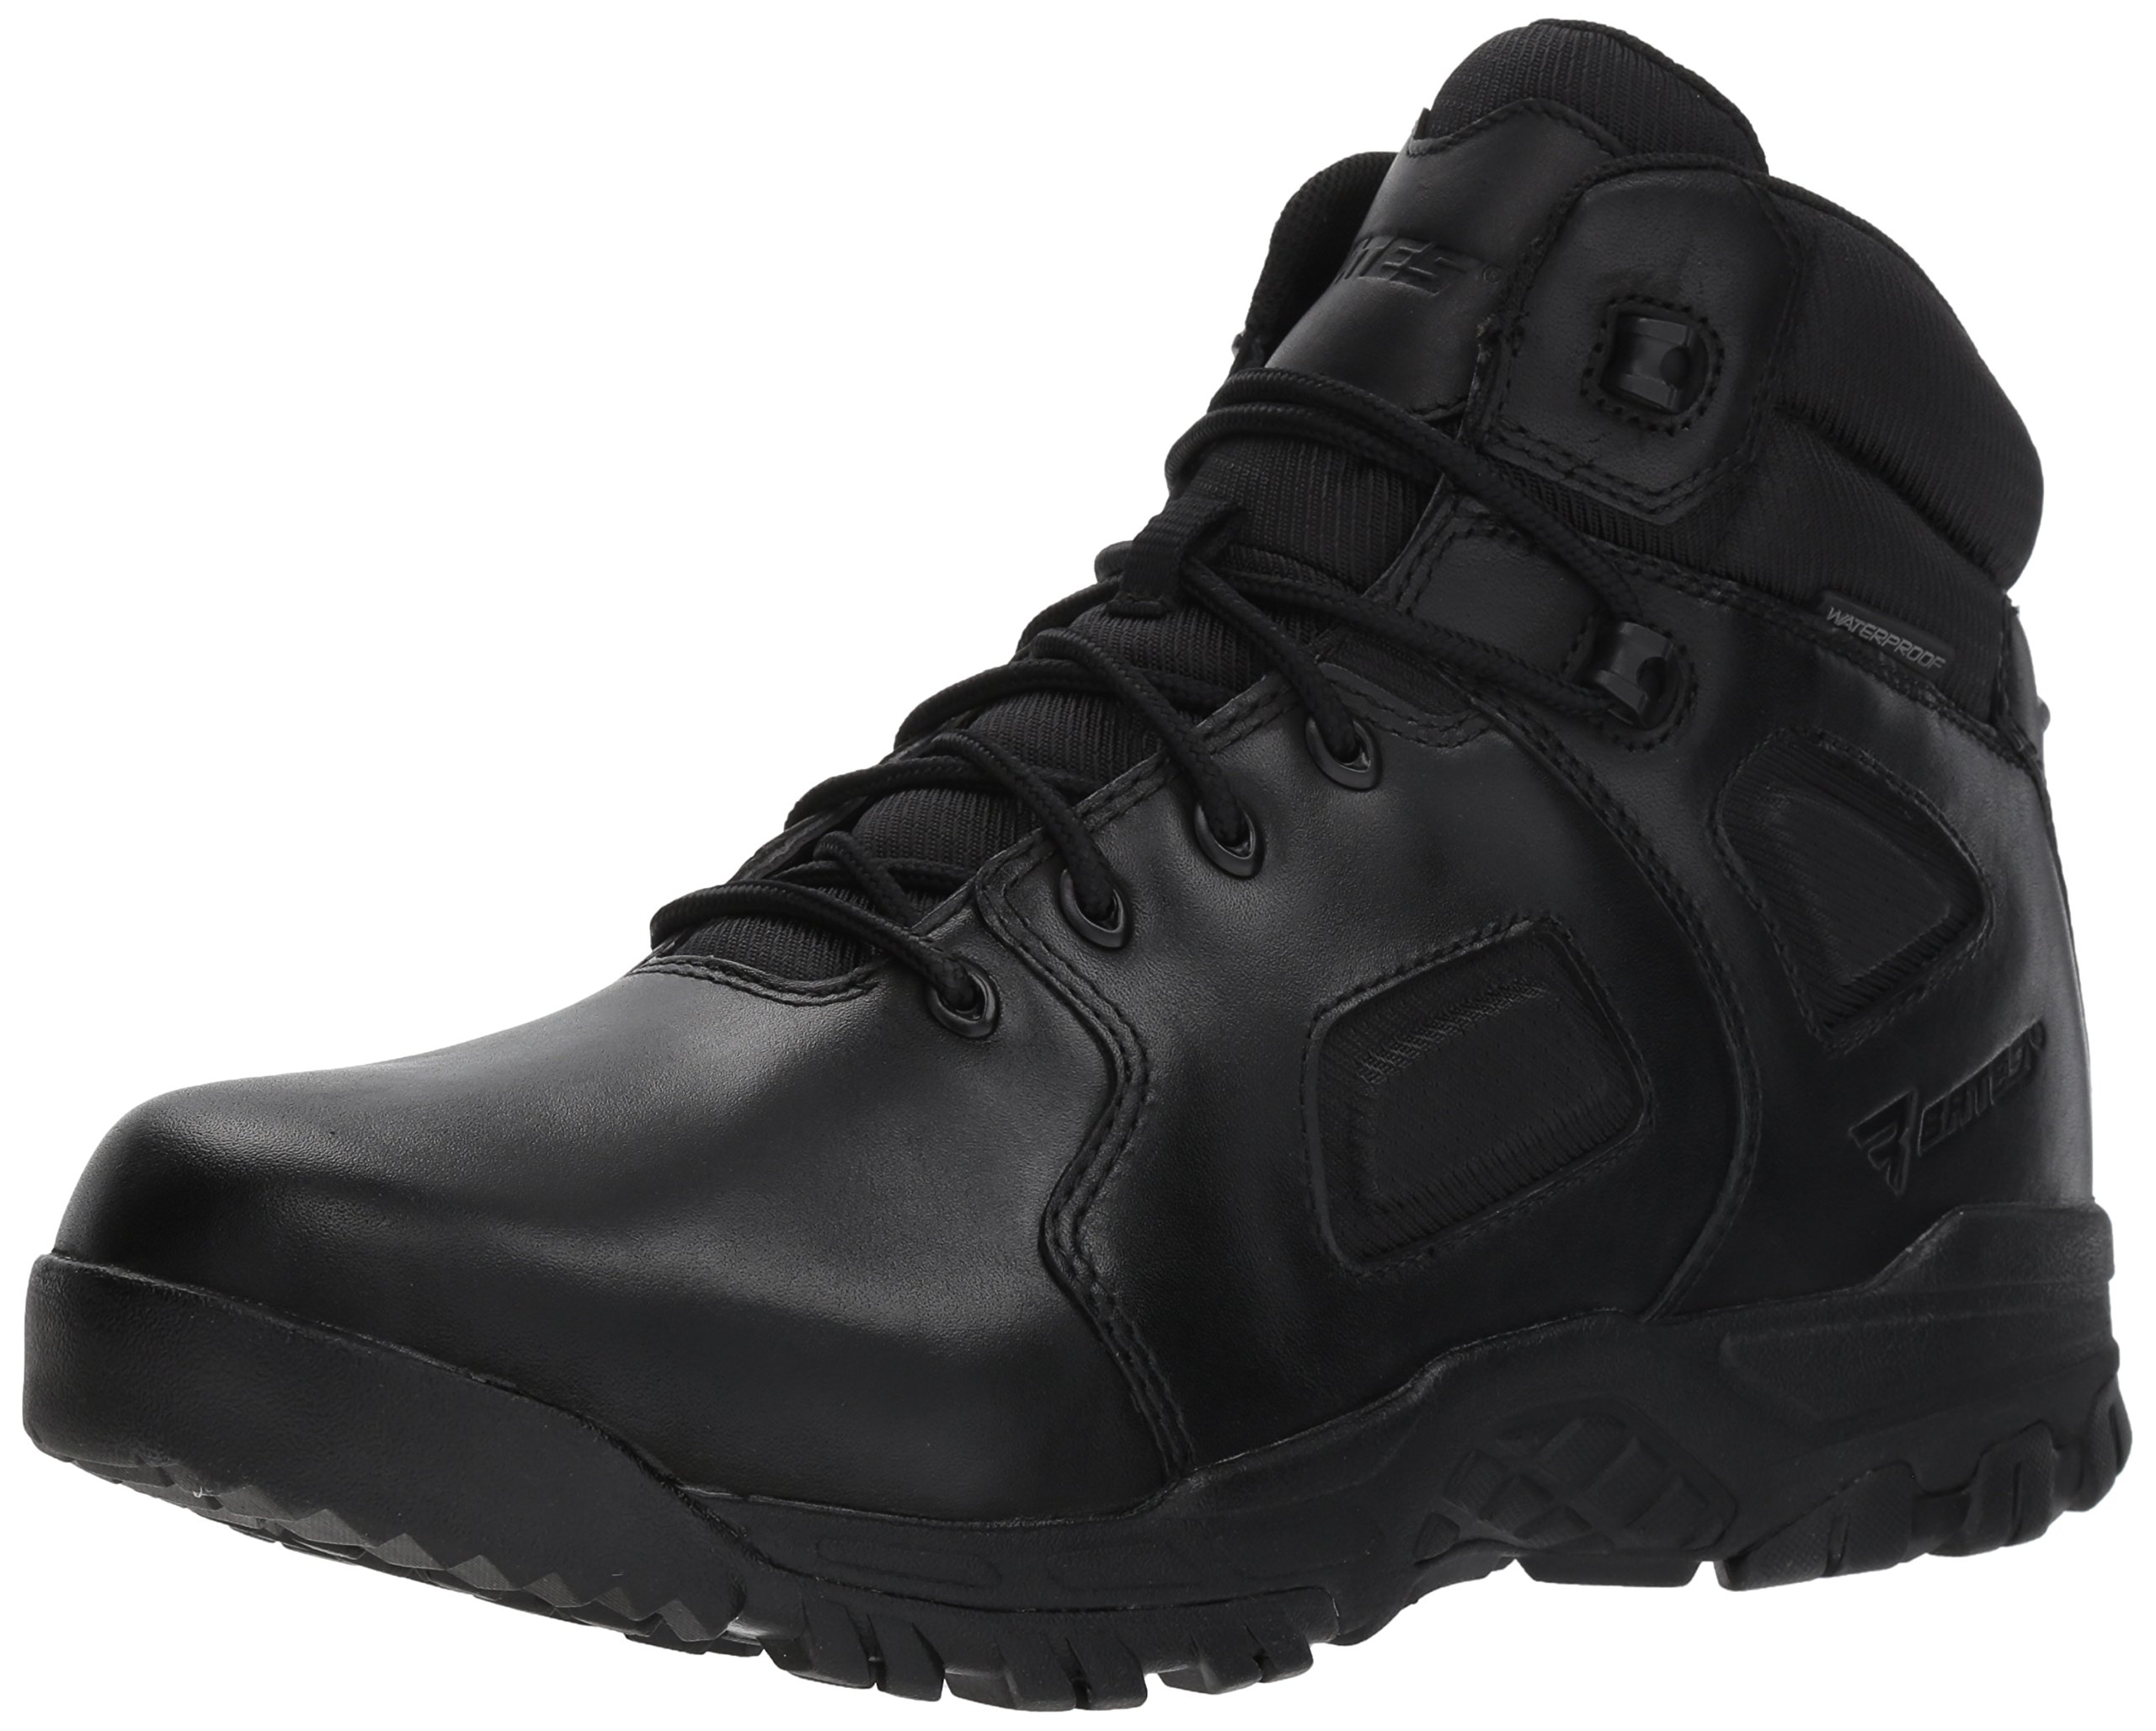 Bates Men's Siege 6'' Waterproof Boots